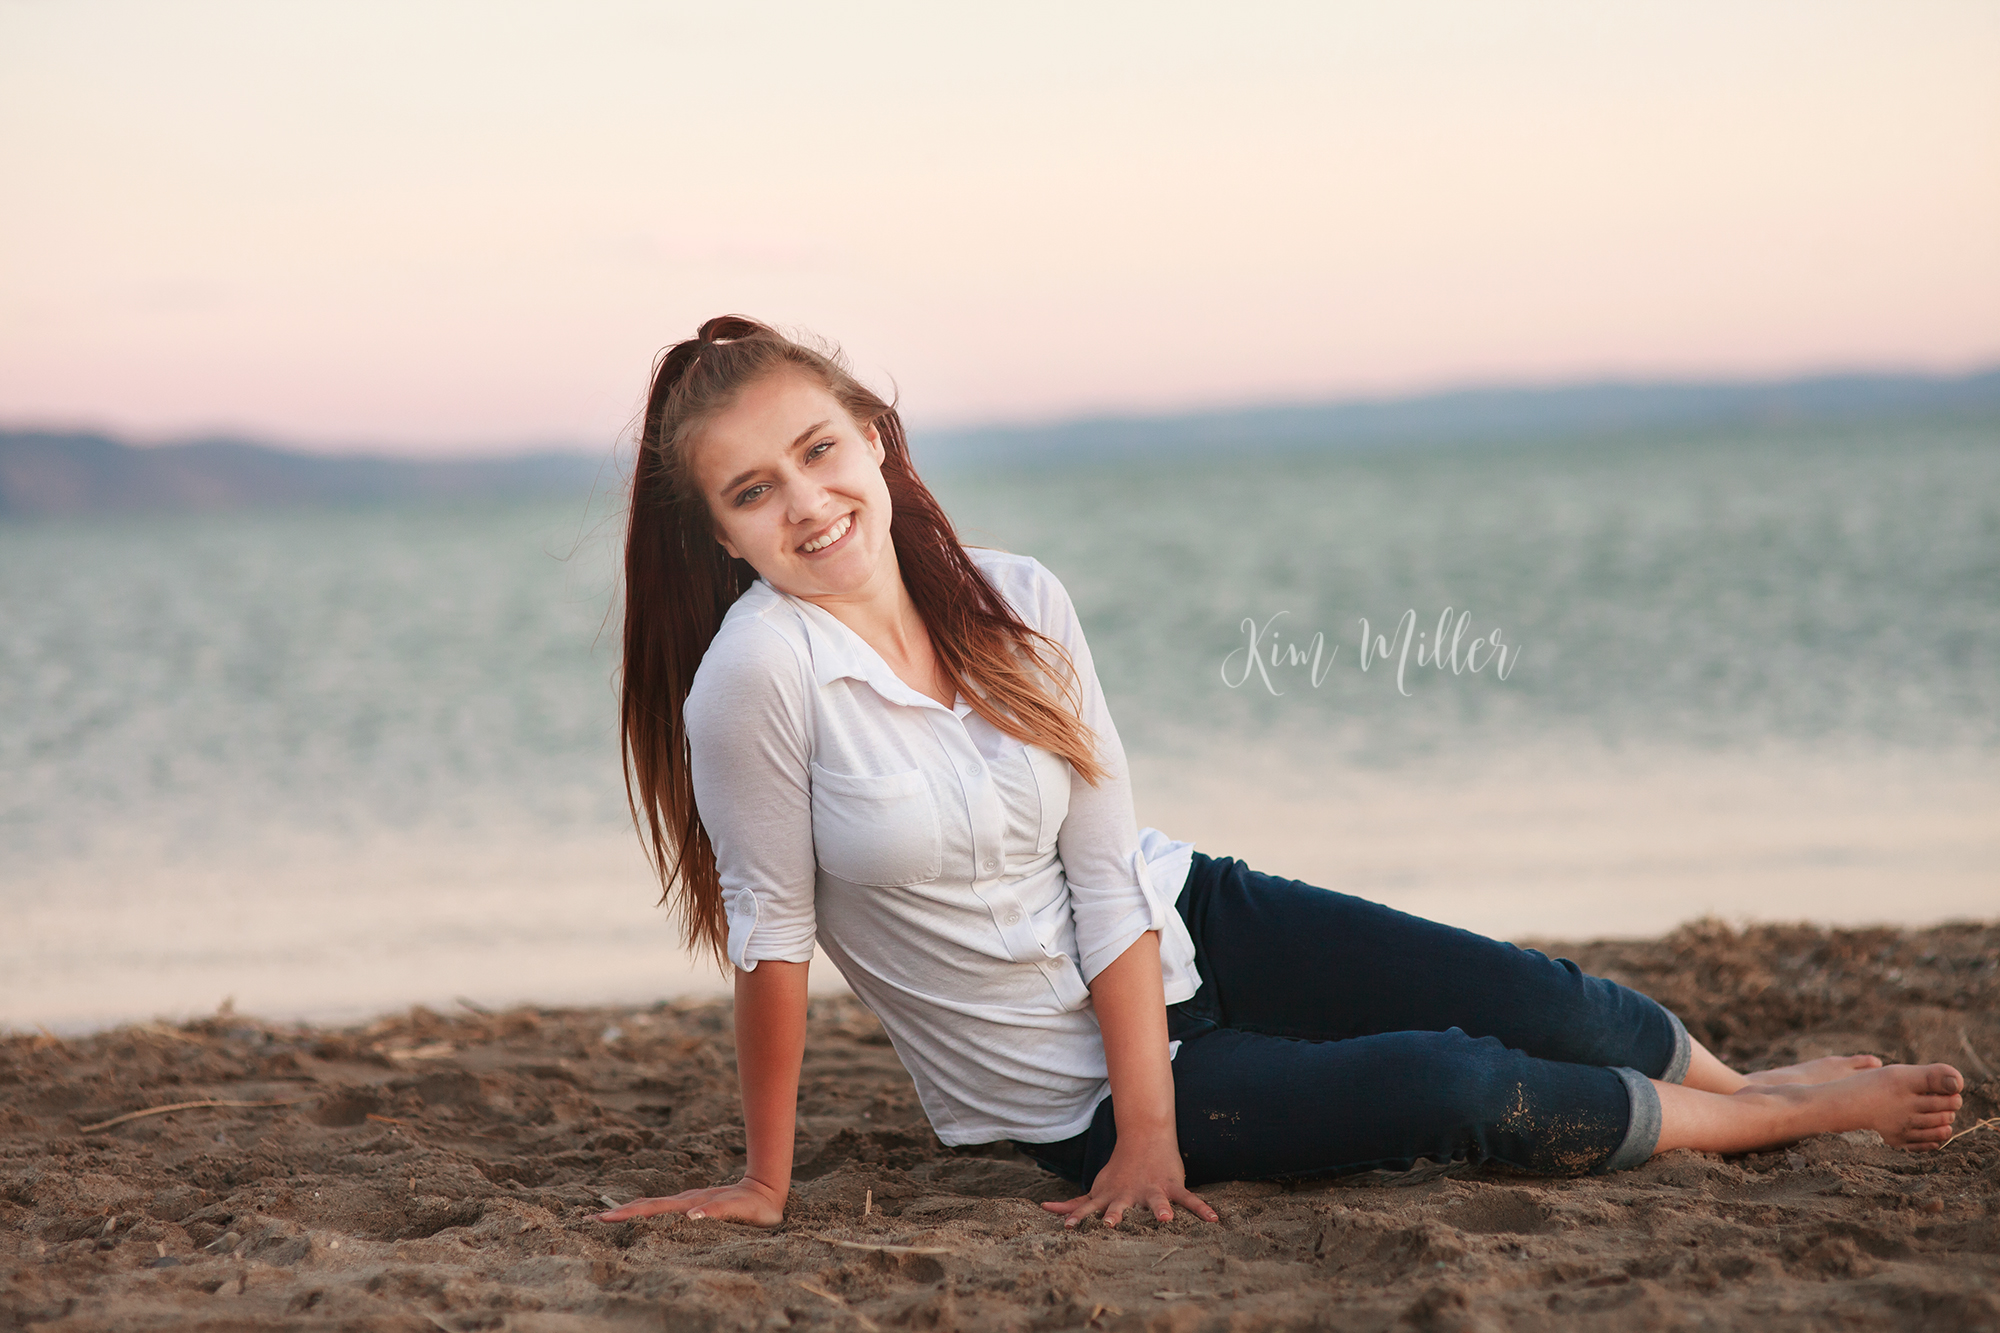 Bear Lake, Family Portraits, Beach Photos, beach Photography, Las Vegas Portraits